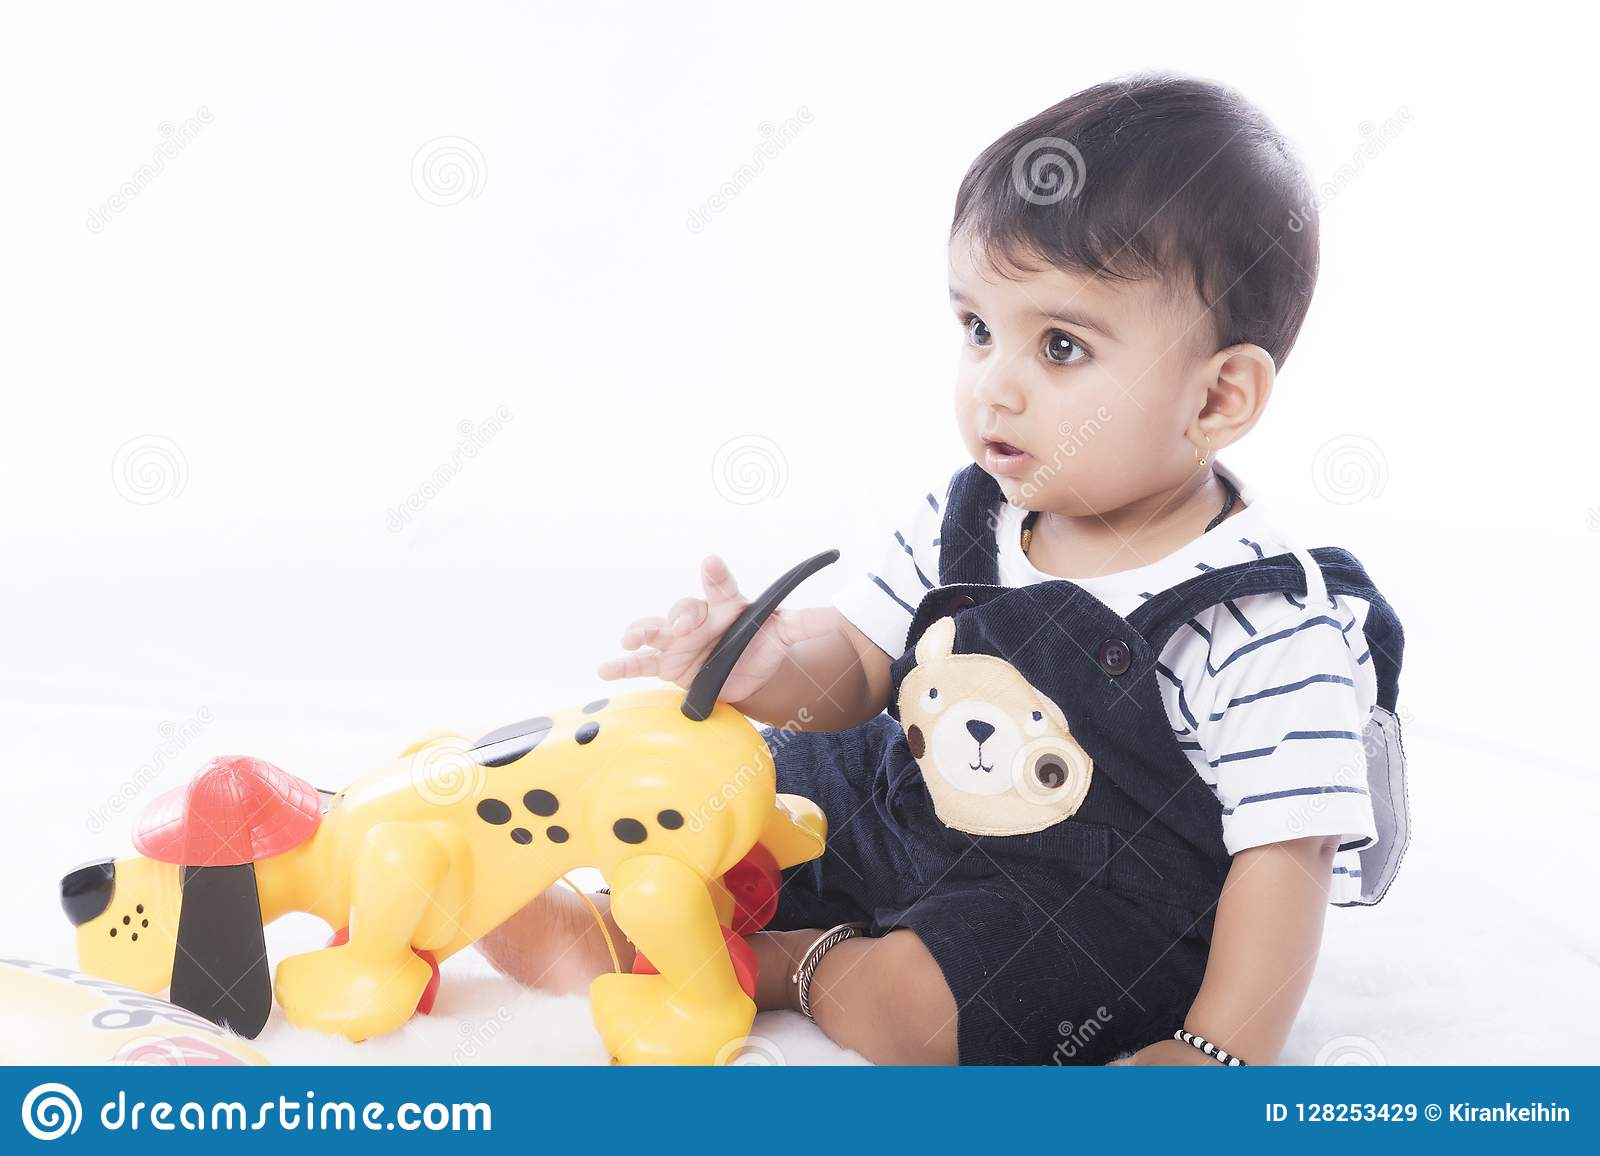 Happy And Healthy Indian Baby Boy With Playful Gesture Stock Image